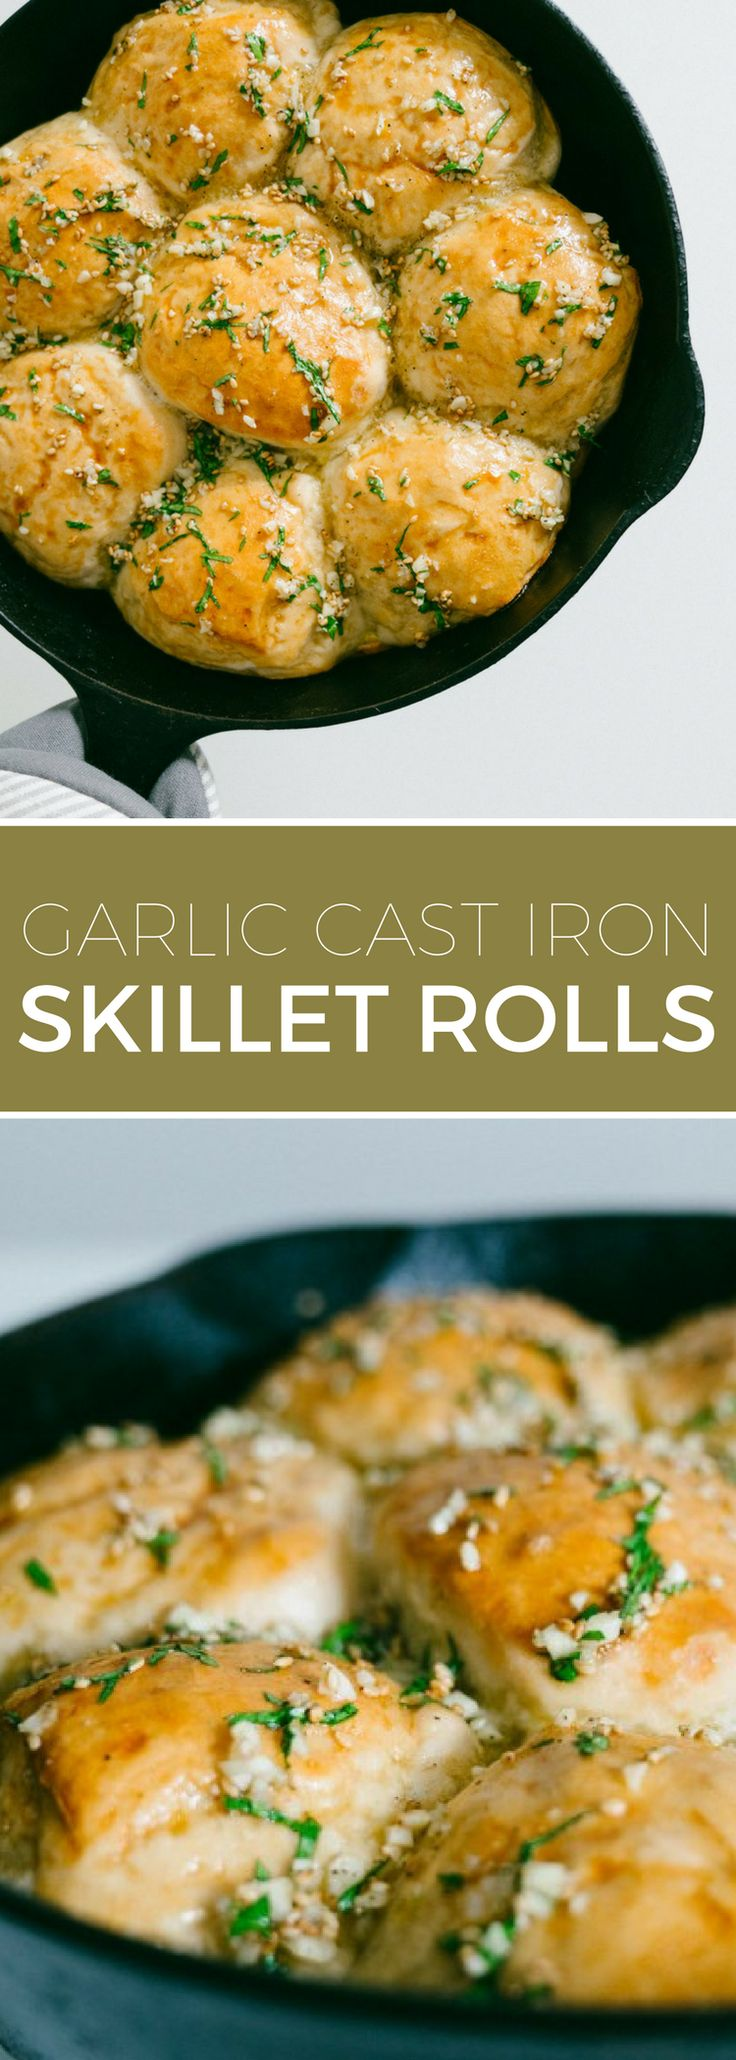 Skillet Rolls with Garlic and Parsley // Simple bread rolls baked in a cast iron skillet and topped with loads of garlic and parsley.